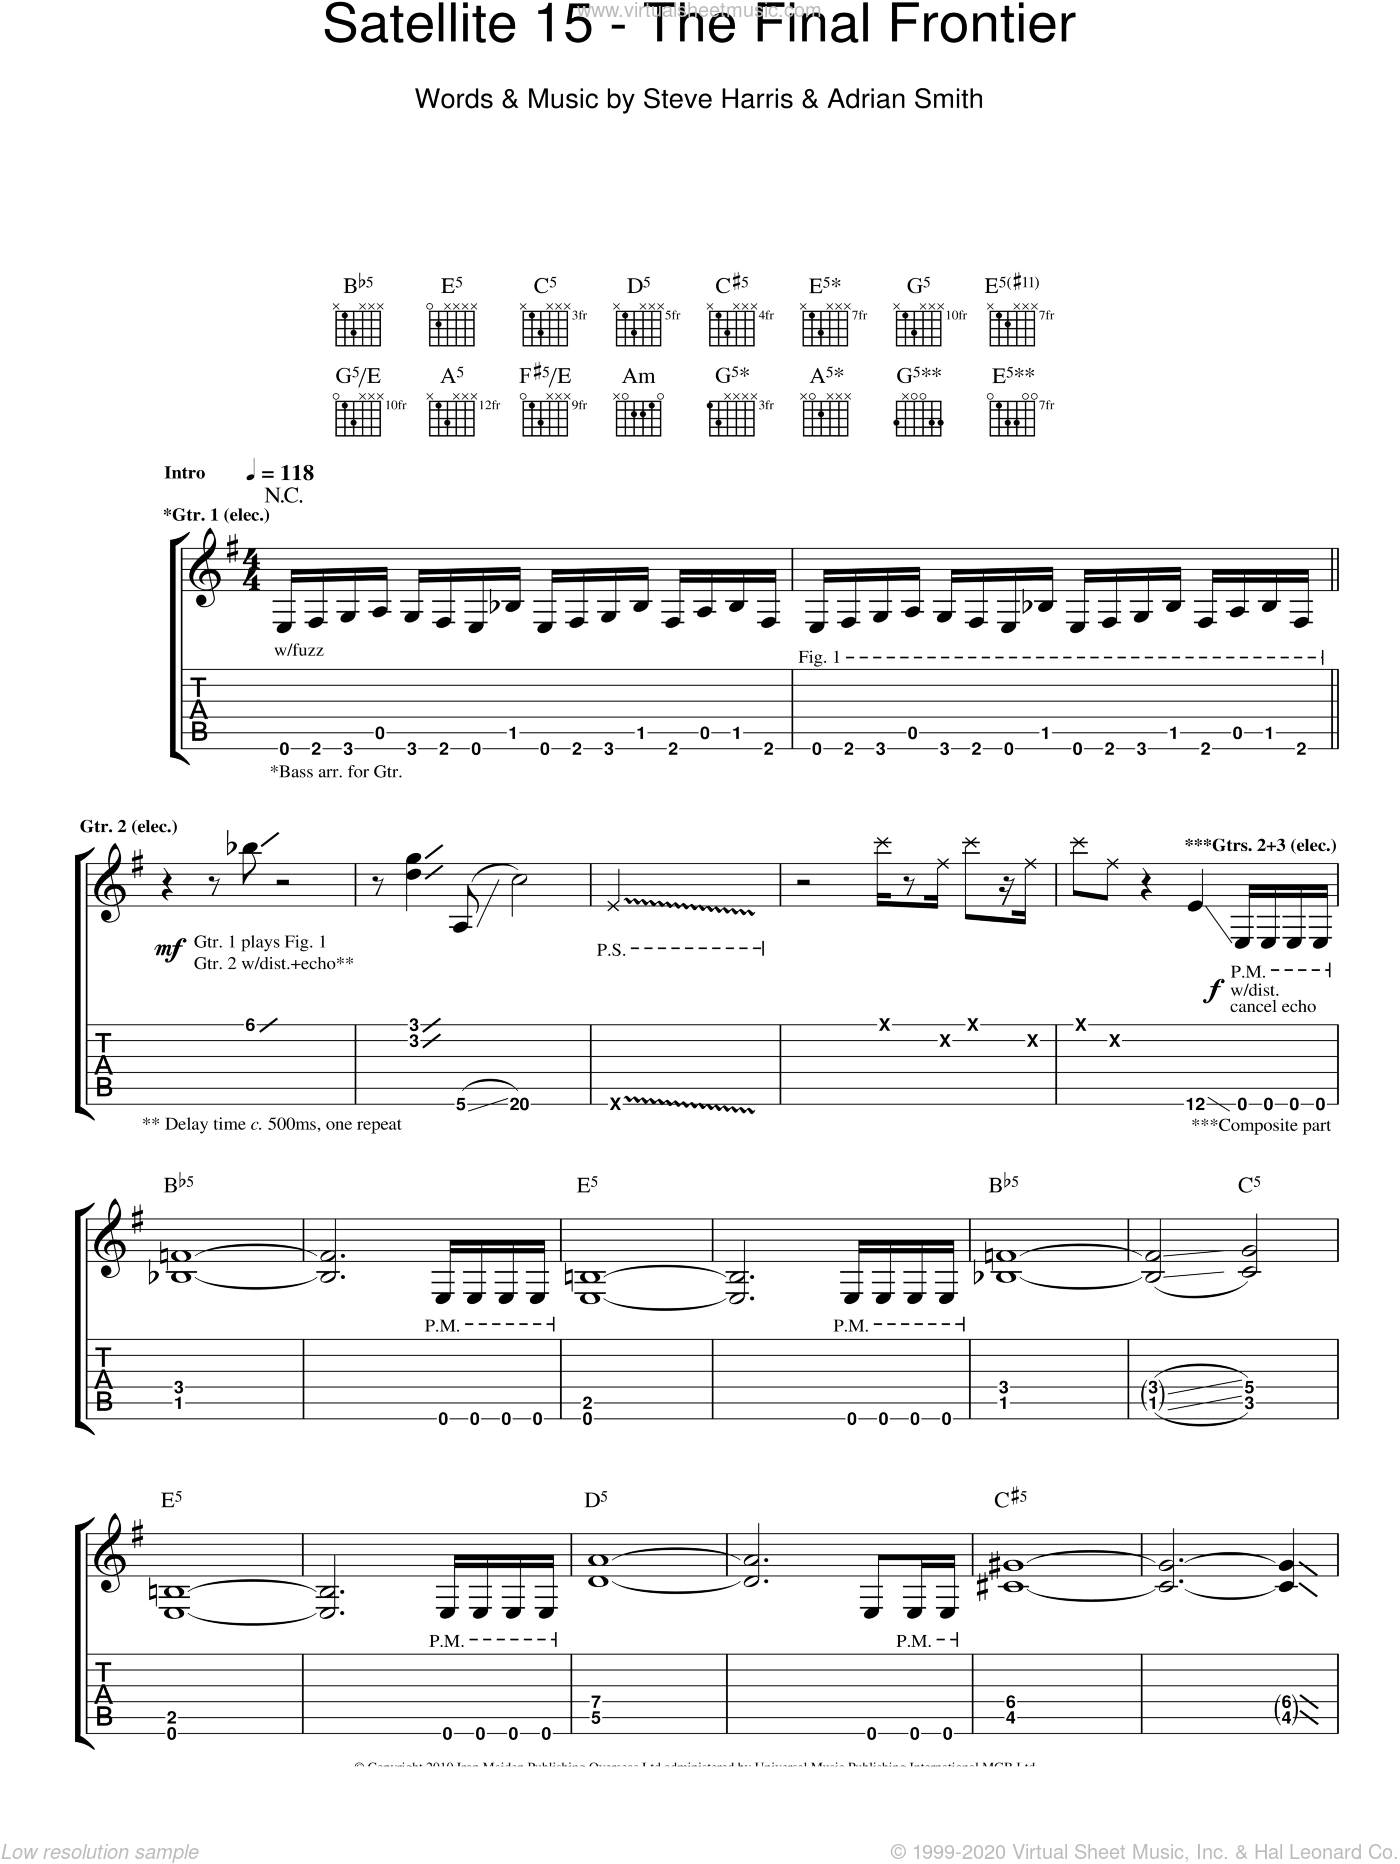 Satellite 15 - The Final Frontier sheet music for guitar (tablature) by Steve Harris, Iron Maiden and Adrian Smith. Score Image Preview.